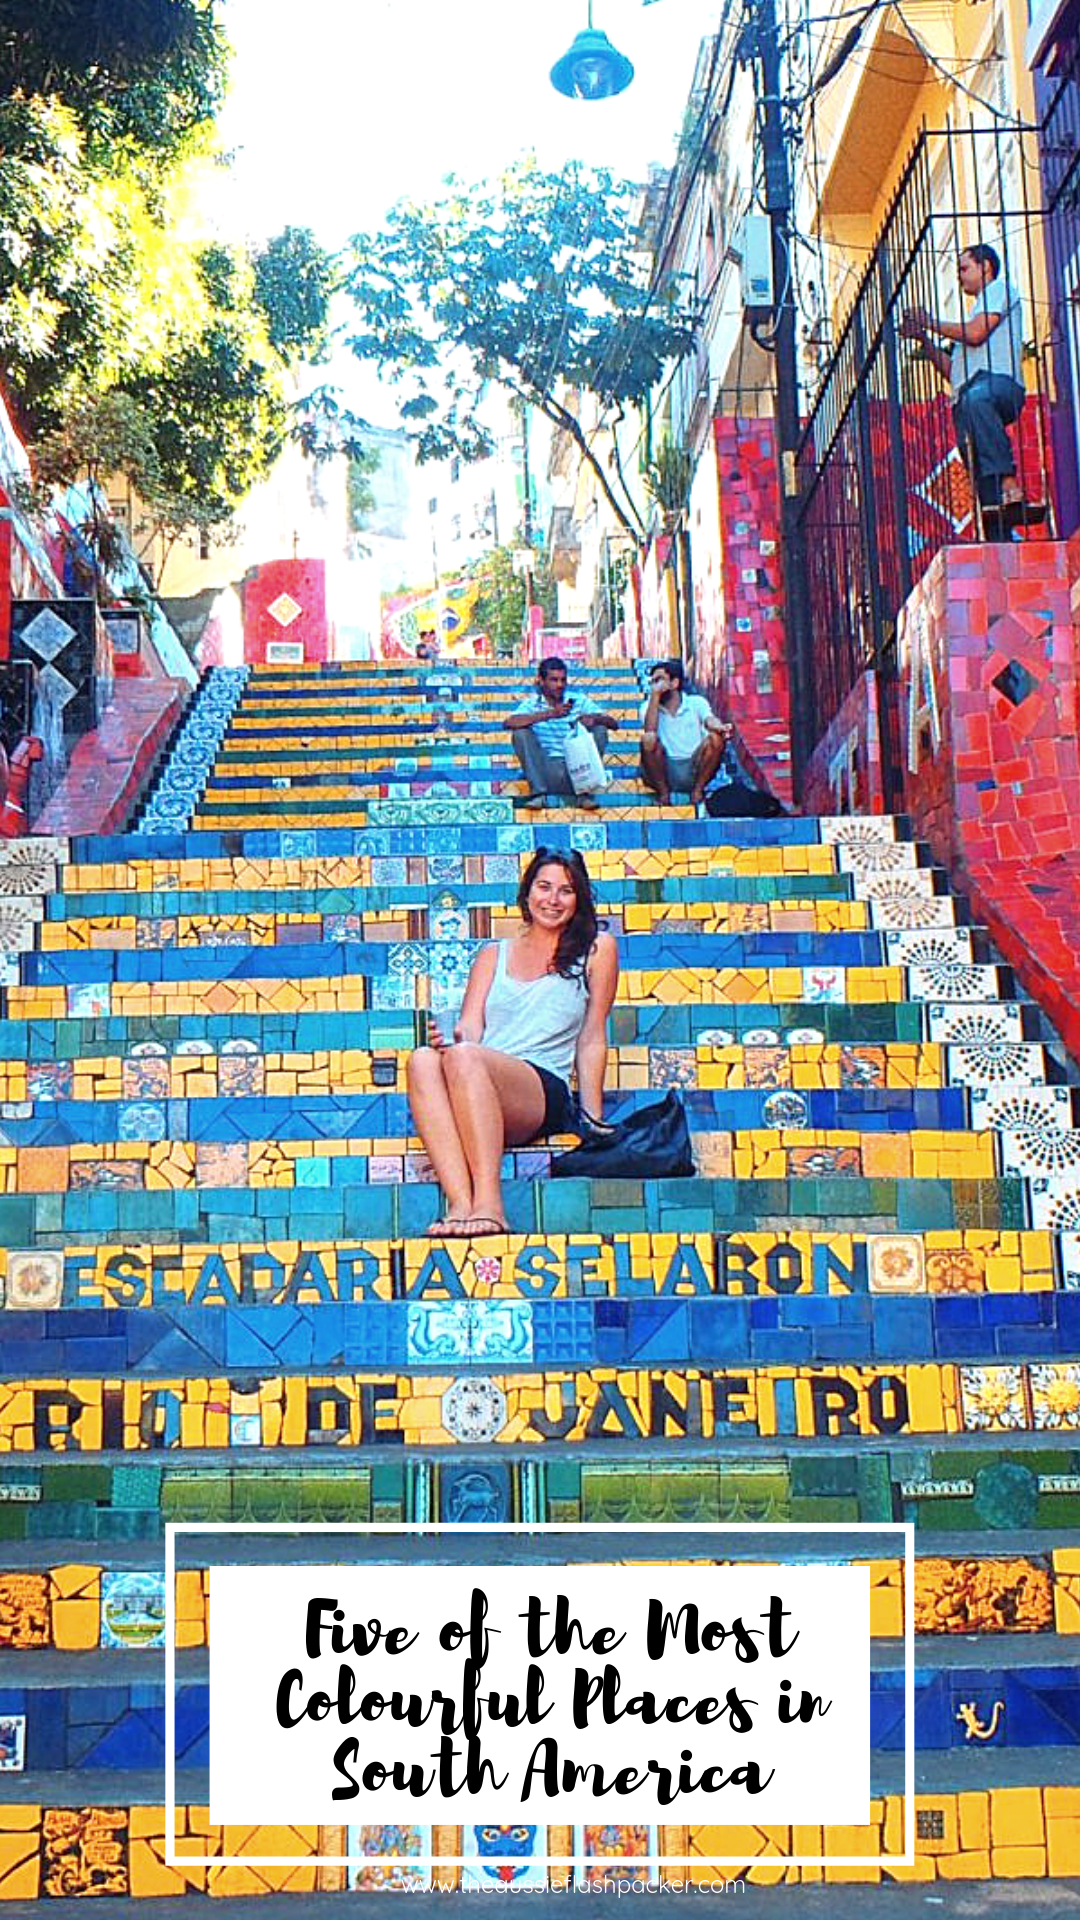 Five-of-the-Most-Colourful-Places-in-South-America